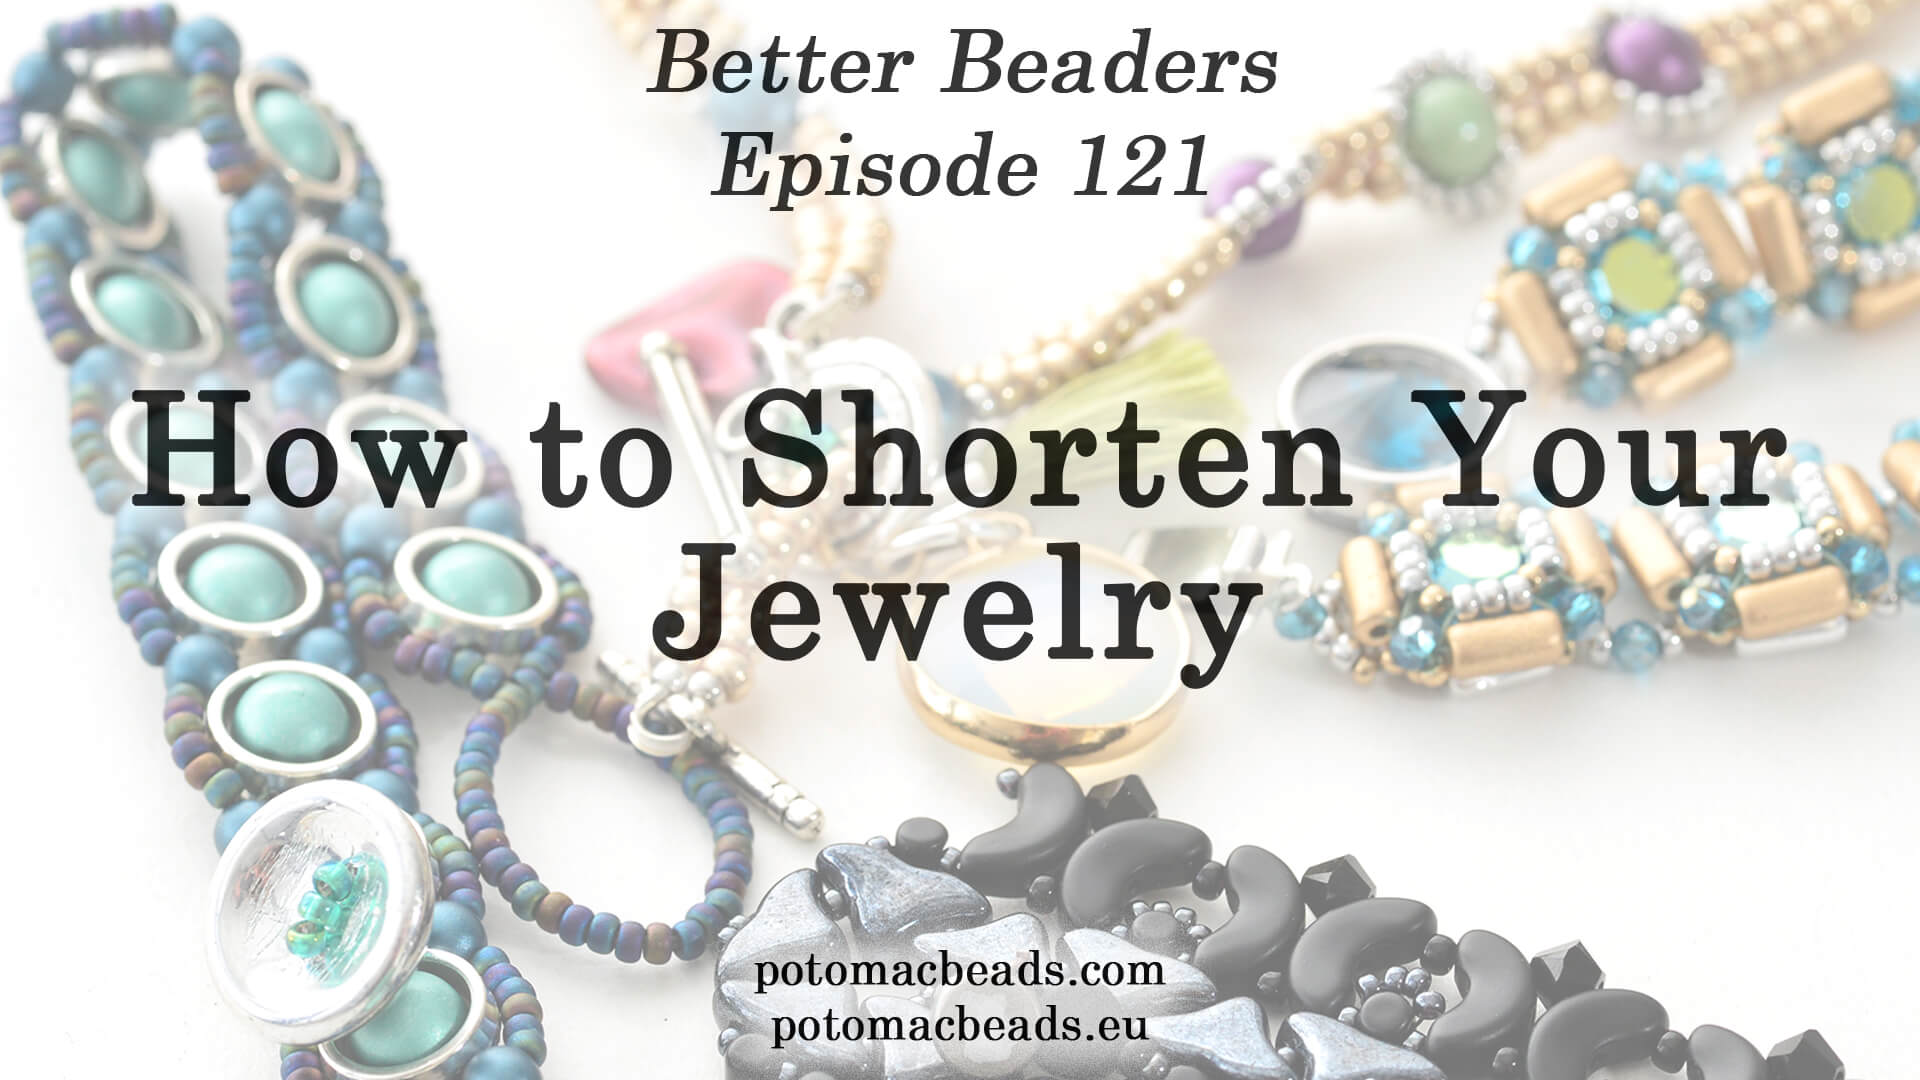 How to Bead / Better Beader Episodes / Better Beader Episode 121 - How to Shorten Your Jewelry